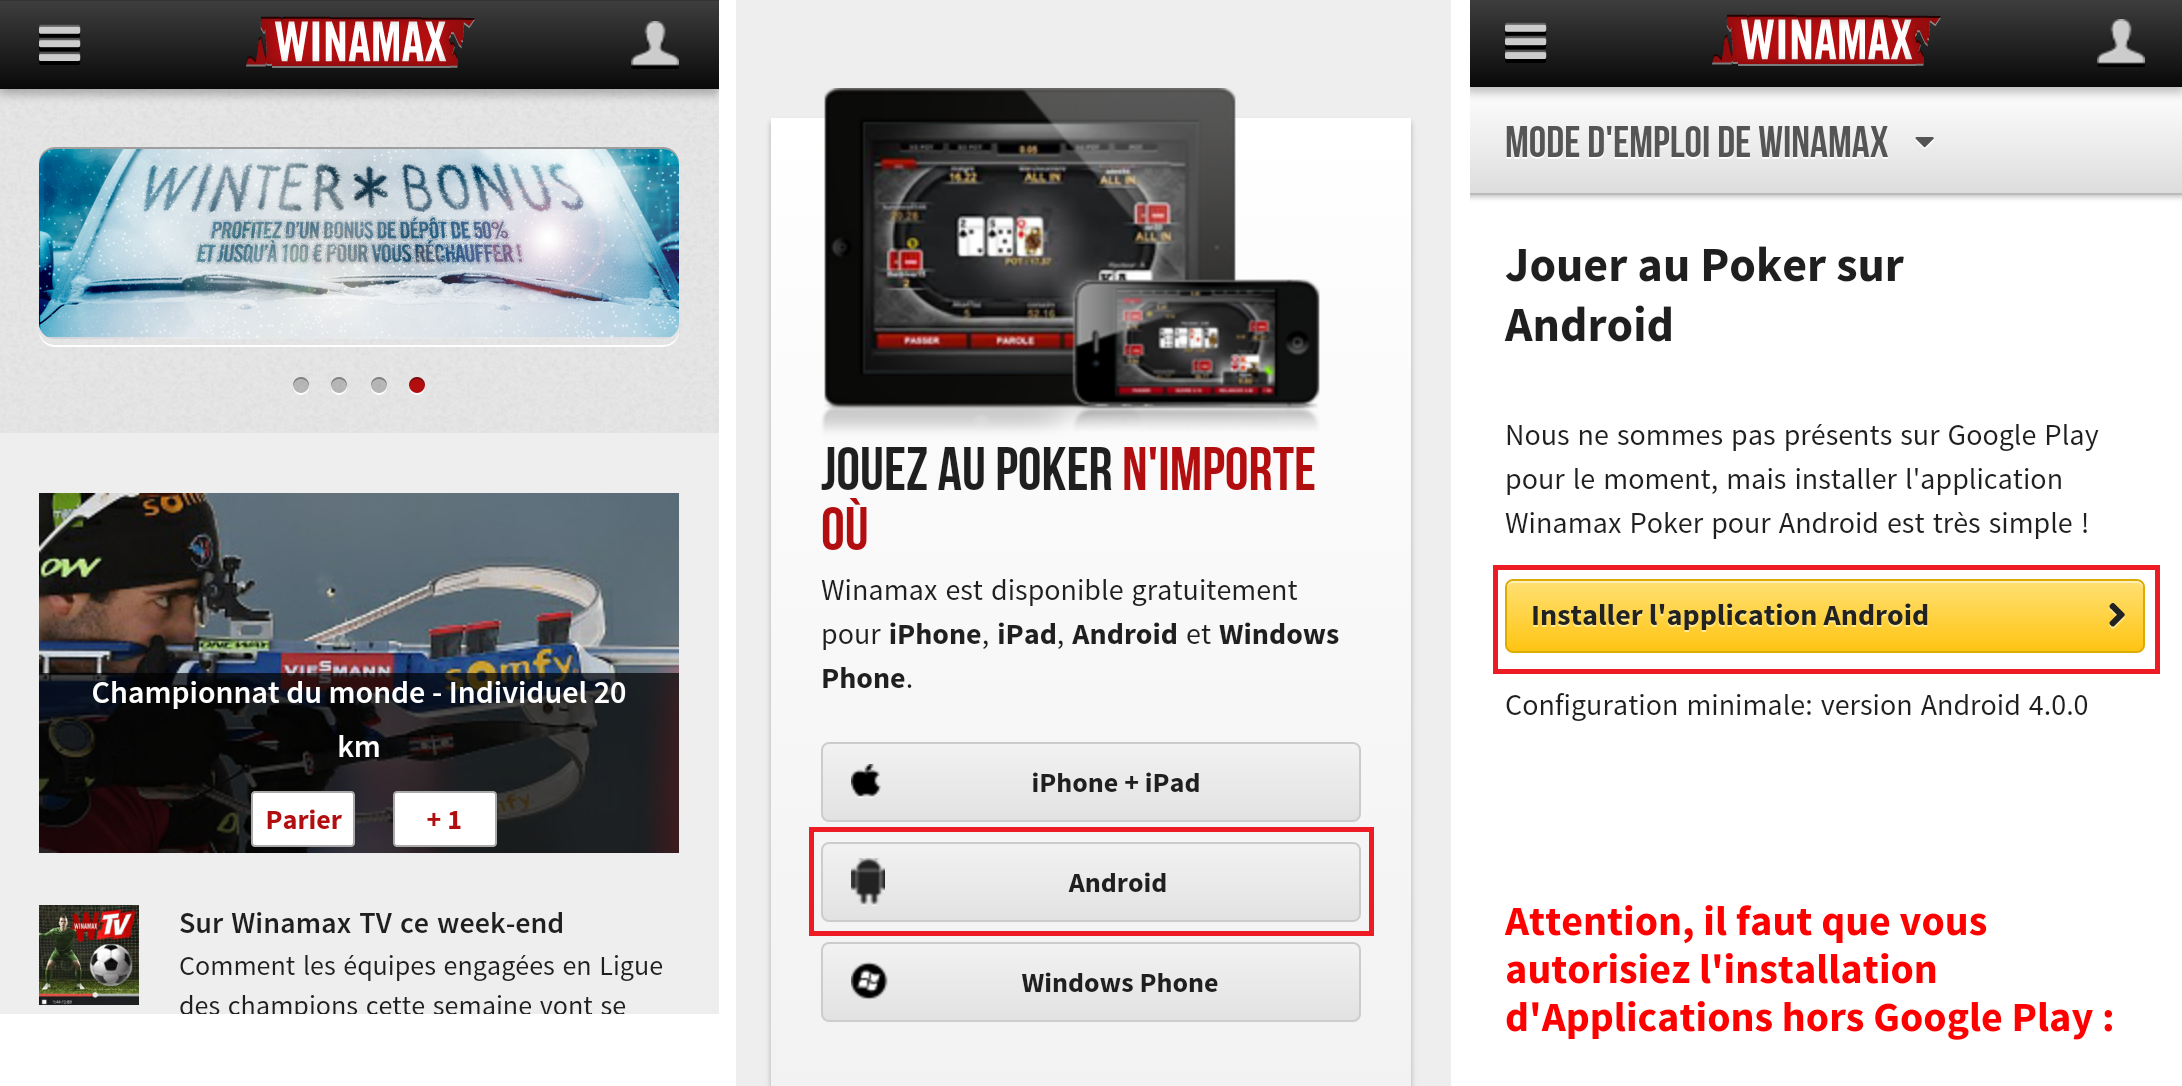 L'application winamax sur android et Iphone